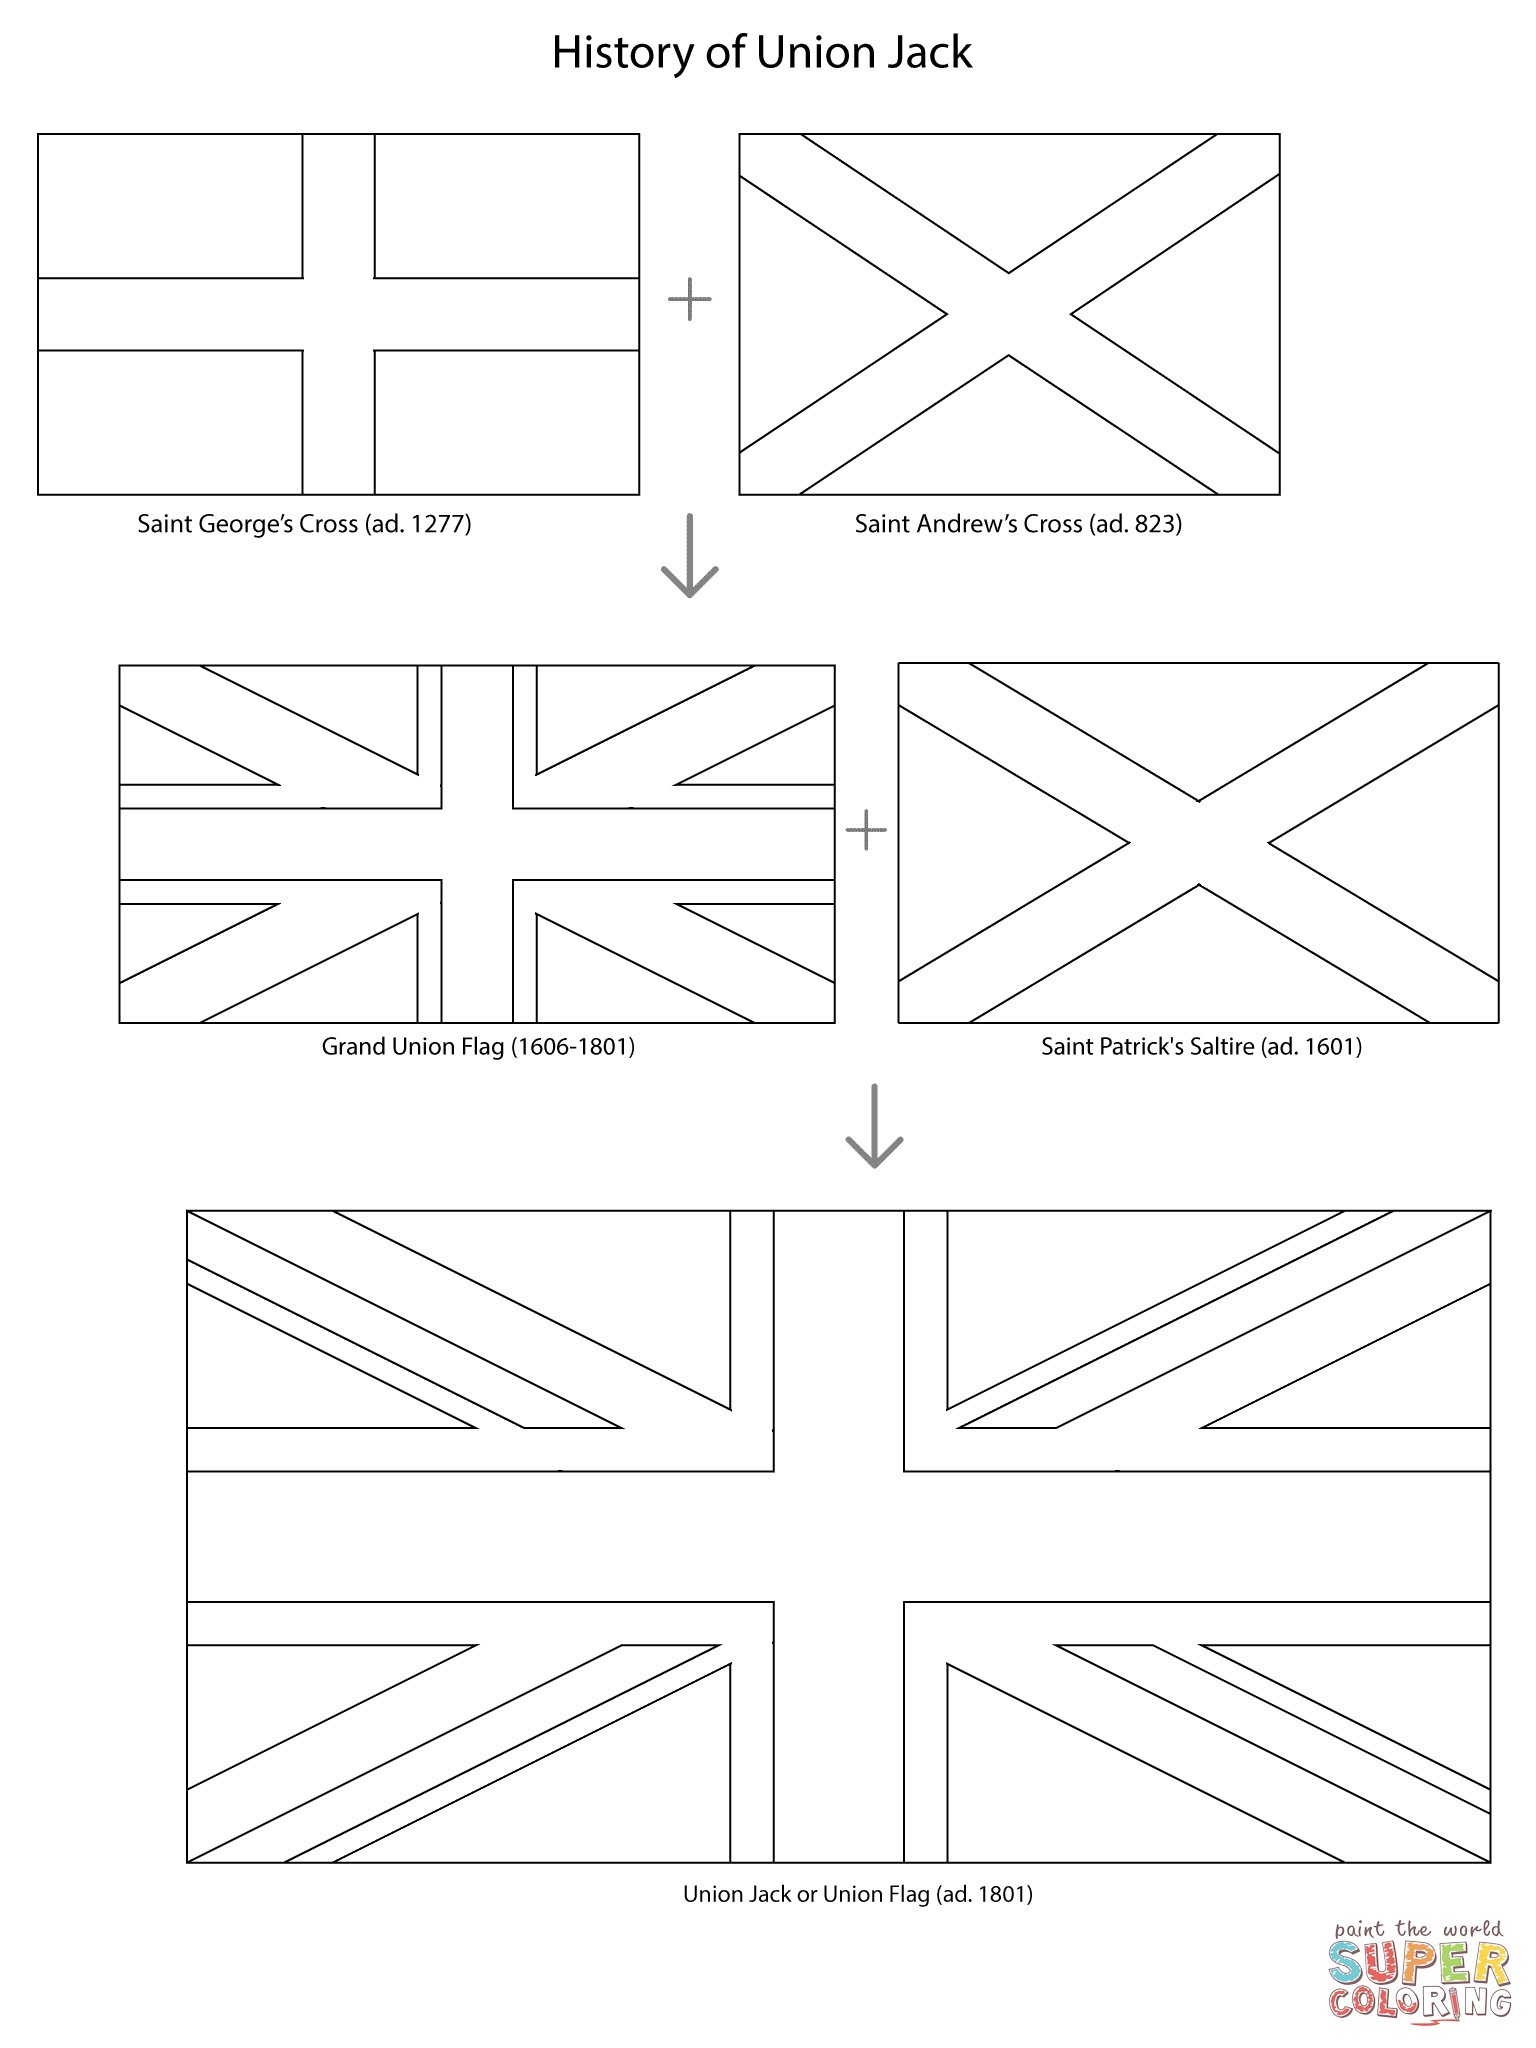 Union Jack History Coloring Page